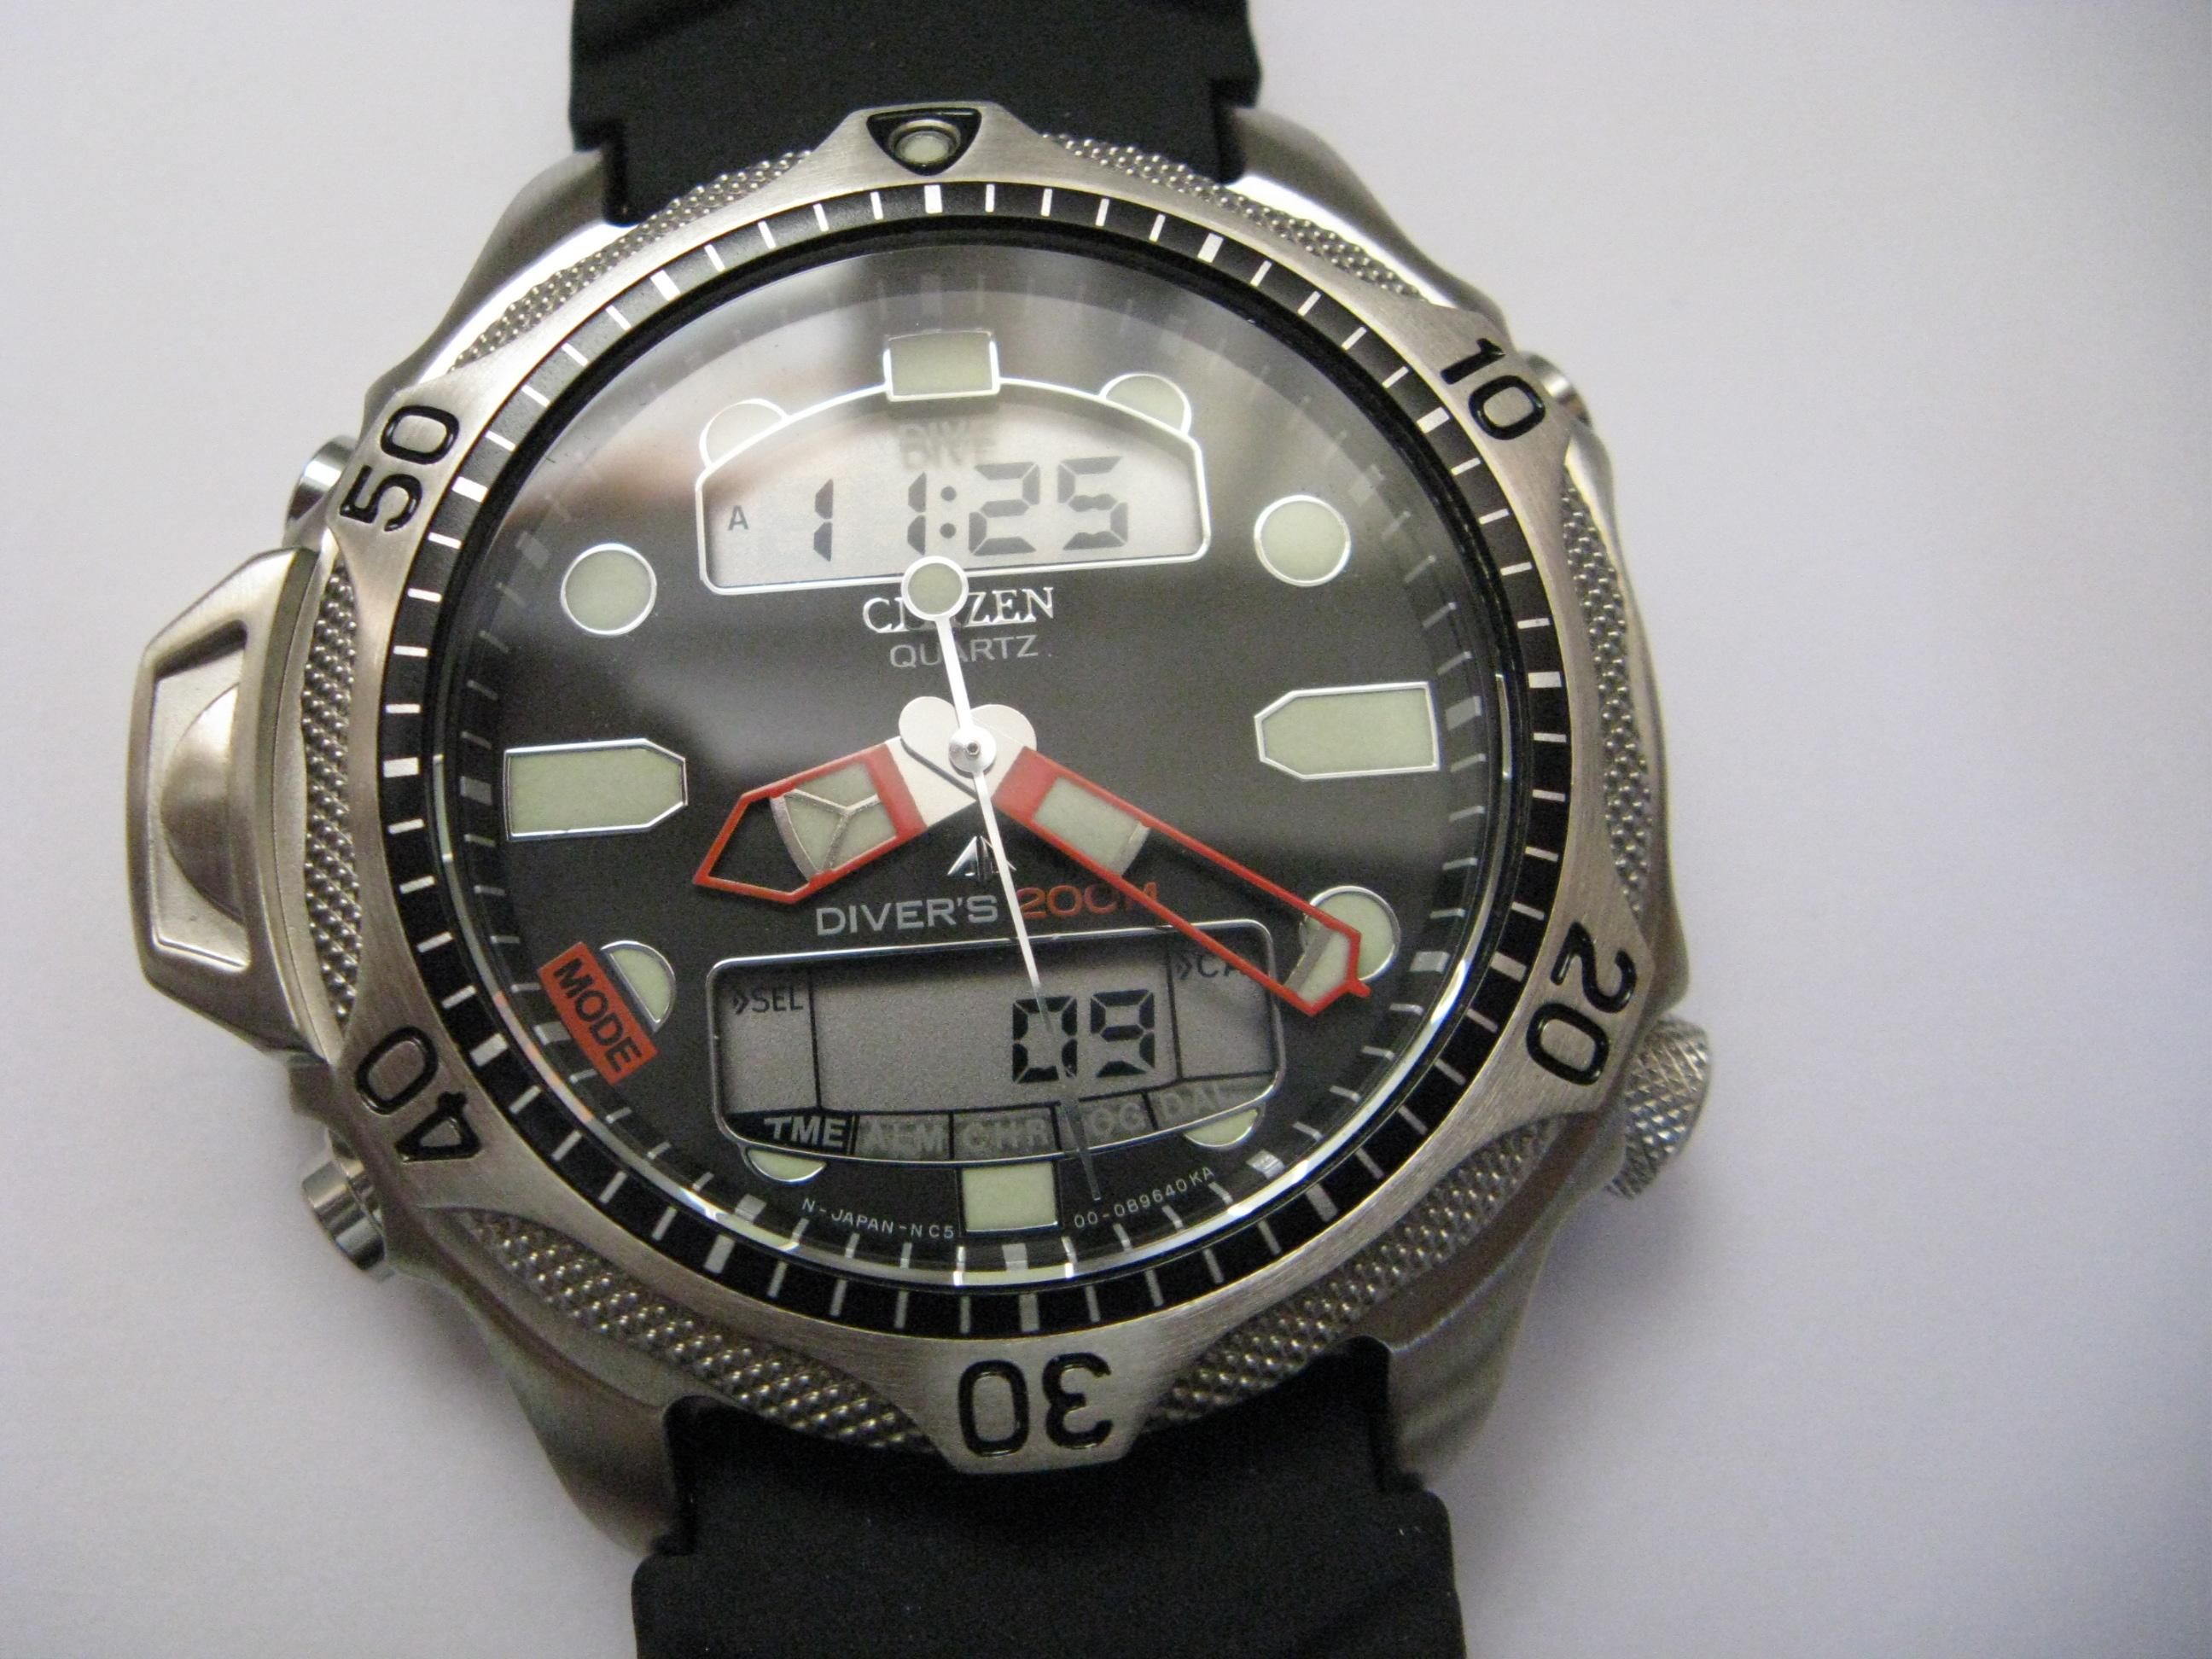 Citizen Mens 200m Divers Watch NY 2300 09B - review, compare prices